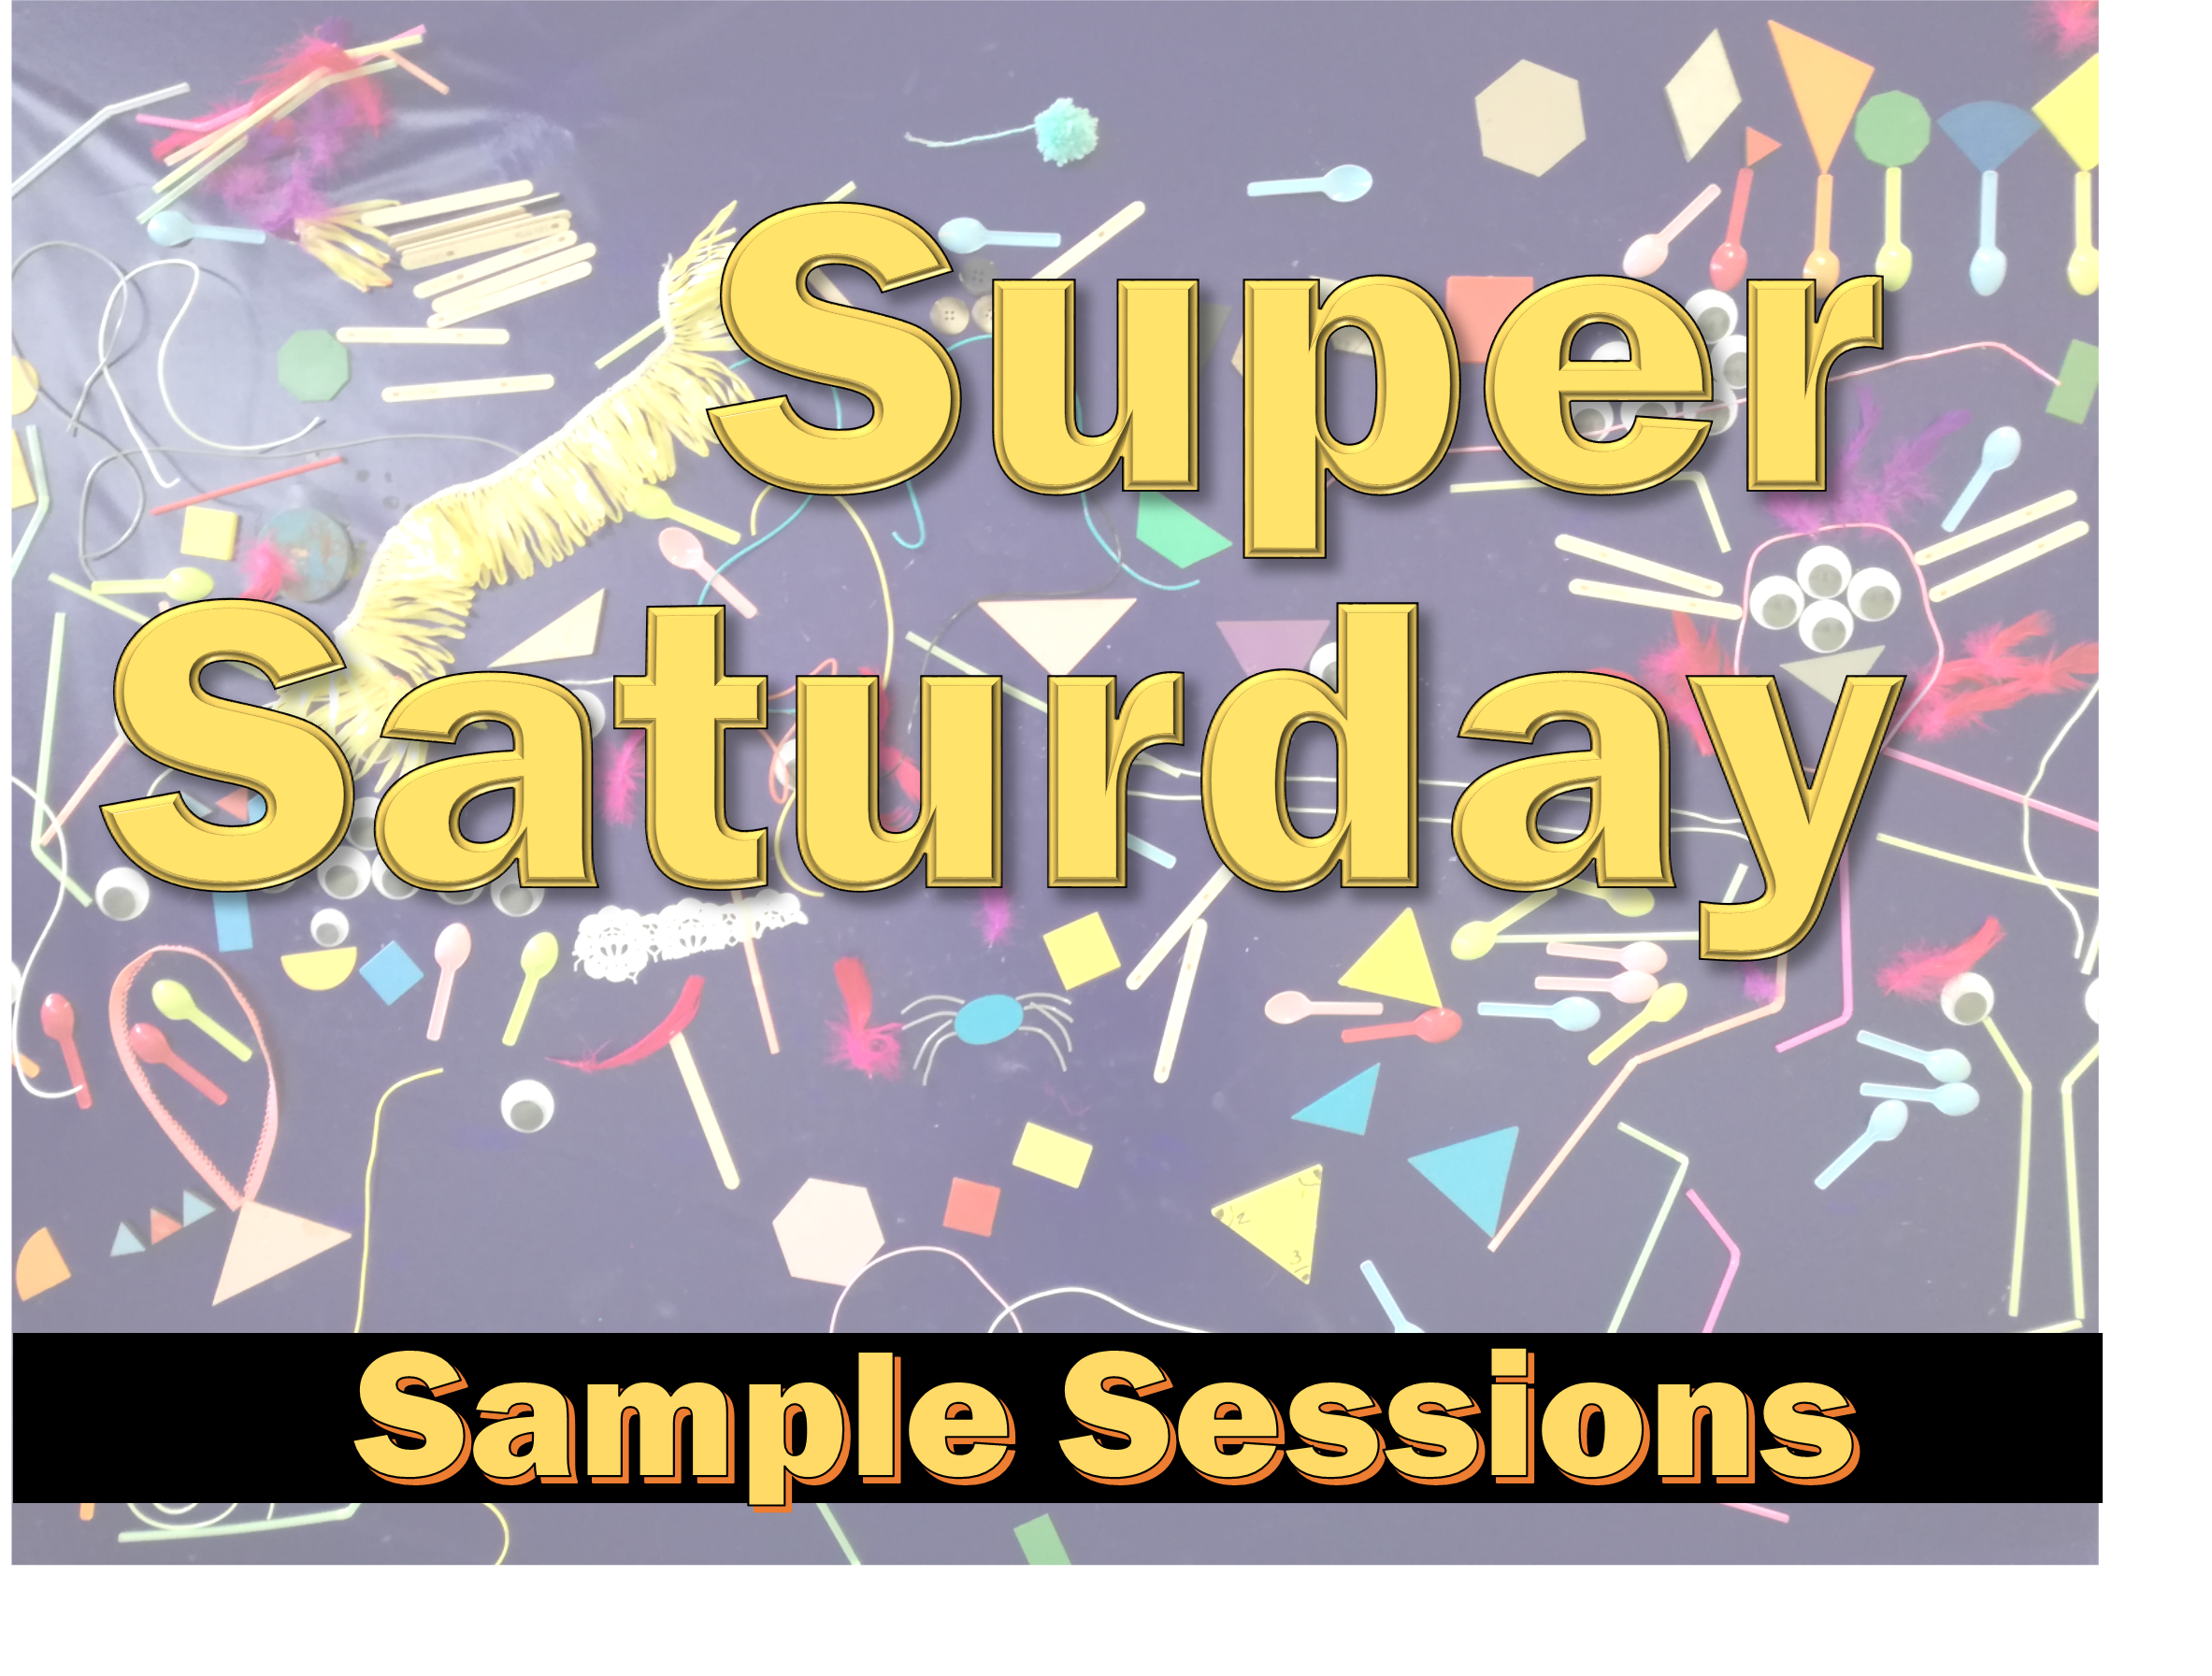 Super Saturday Session Image.png